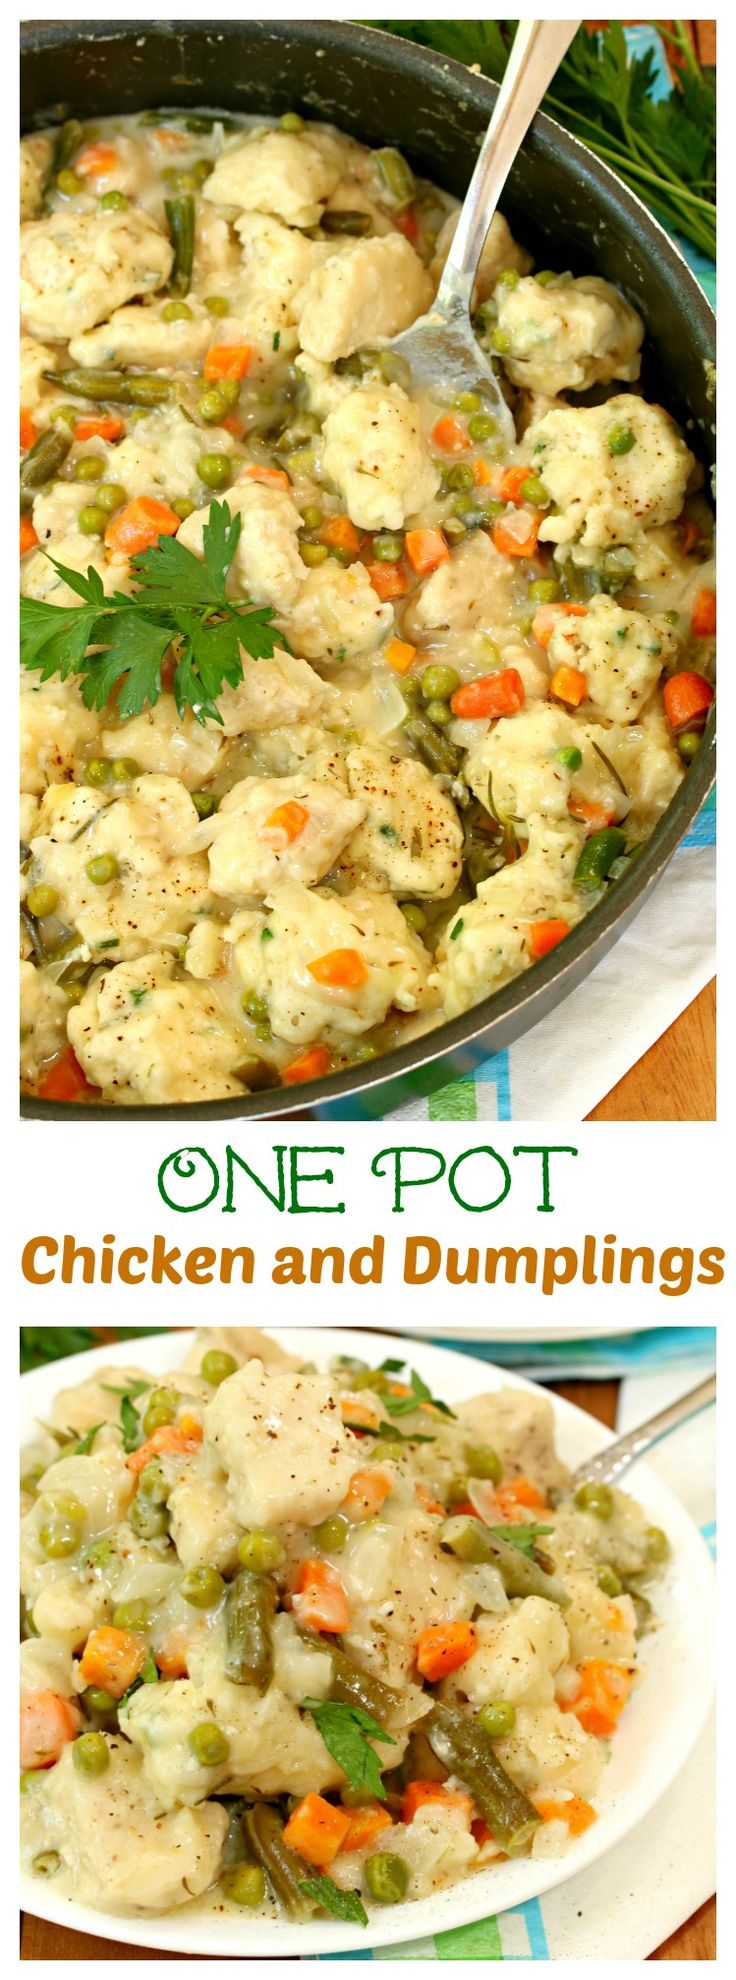 One Pot Chicken and Dumplings: Savory chicken and dumplings smothered in a creamy sauce with your favorite vegetables, all made in one pot!